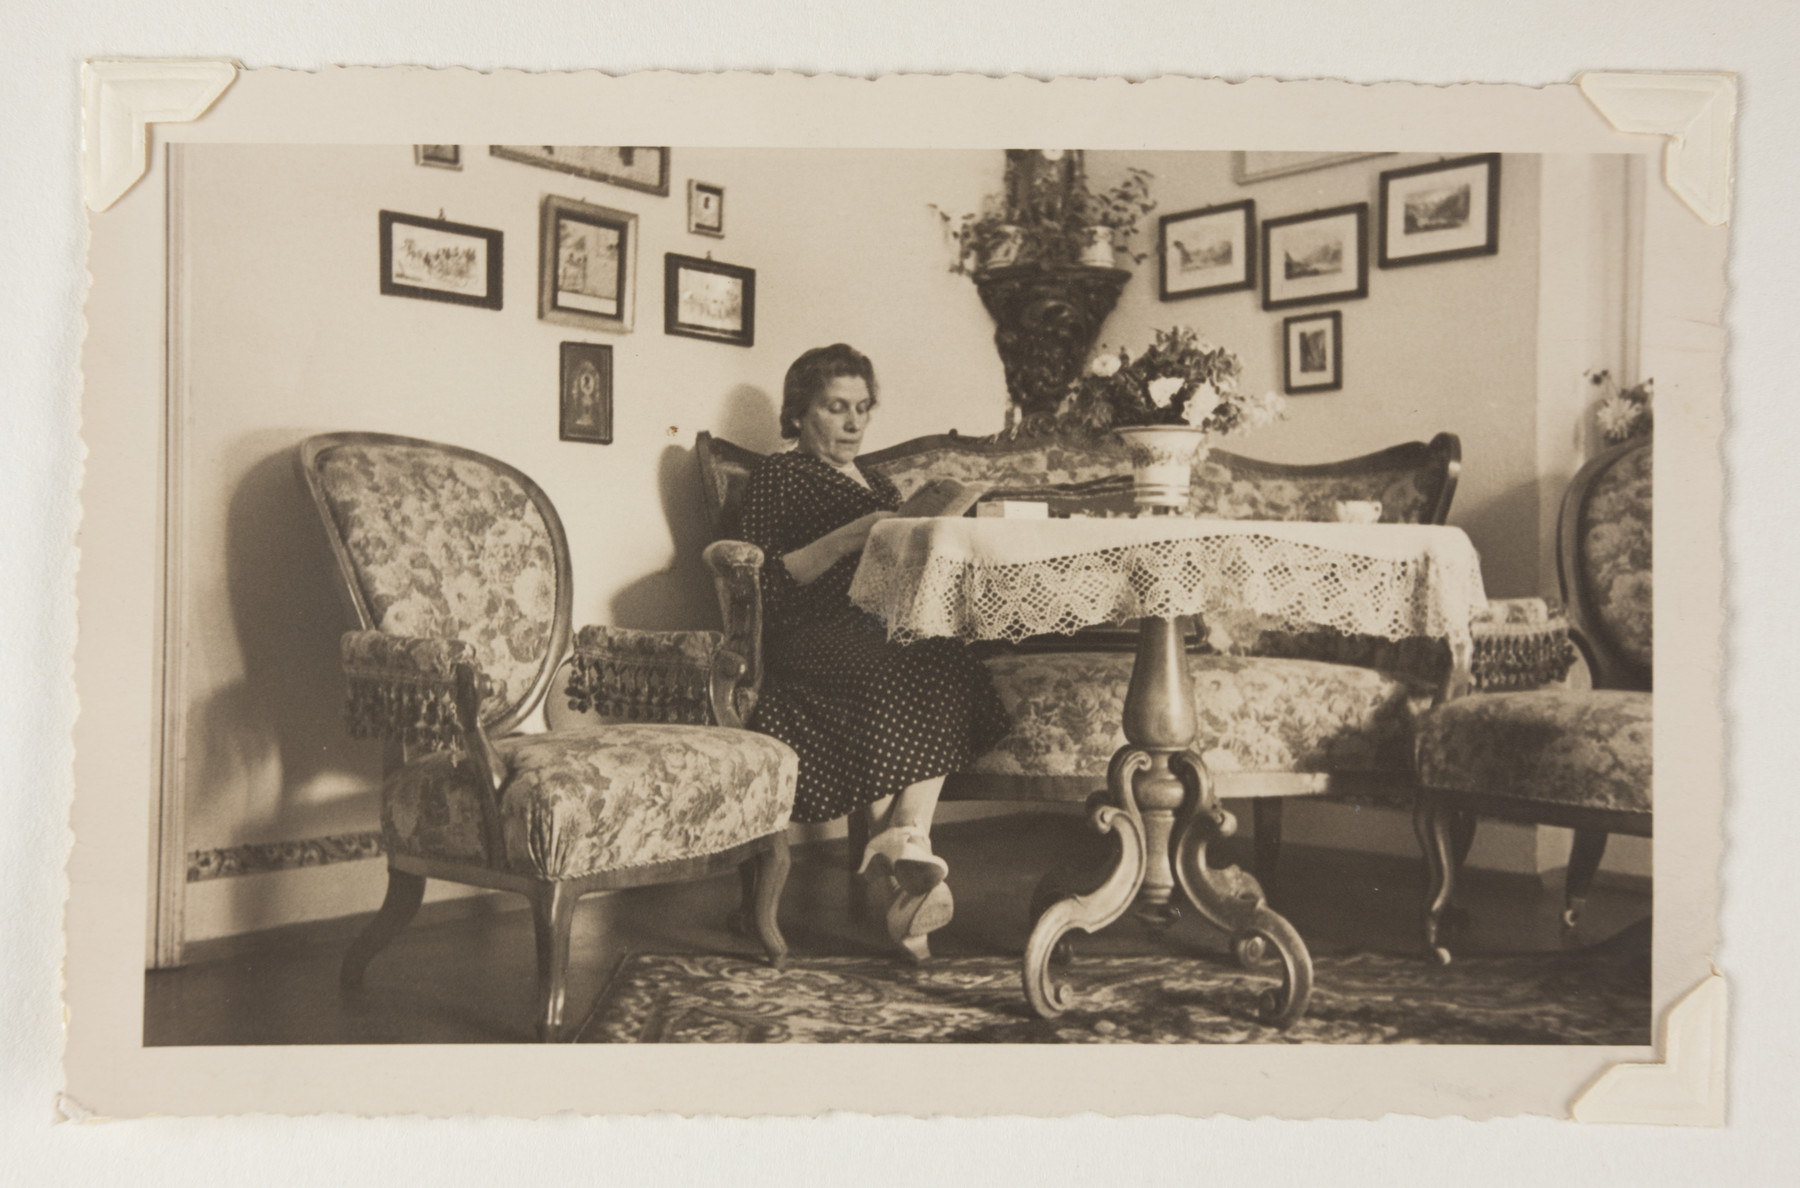 Therese Bloch-Bauer sits and reads in her parlor.